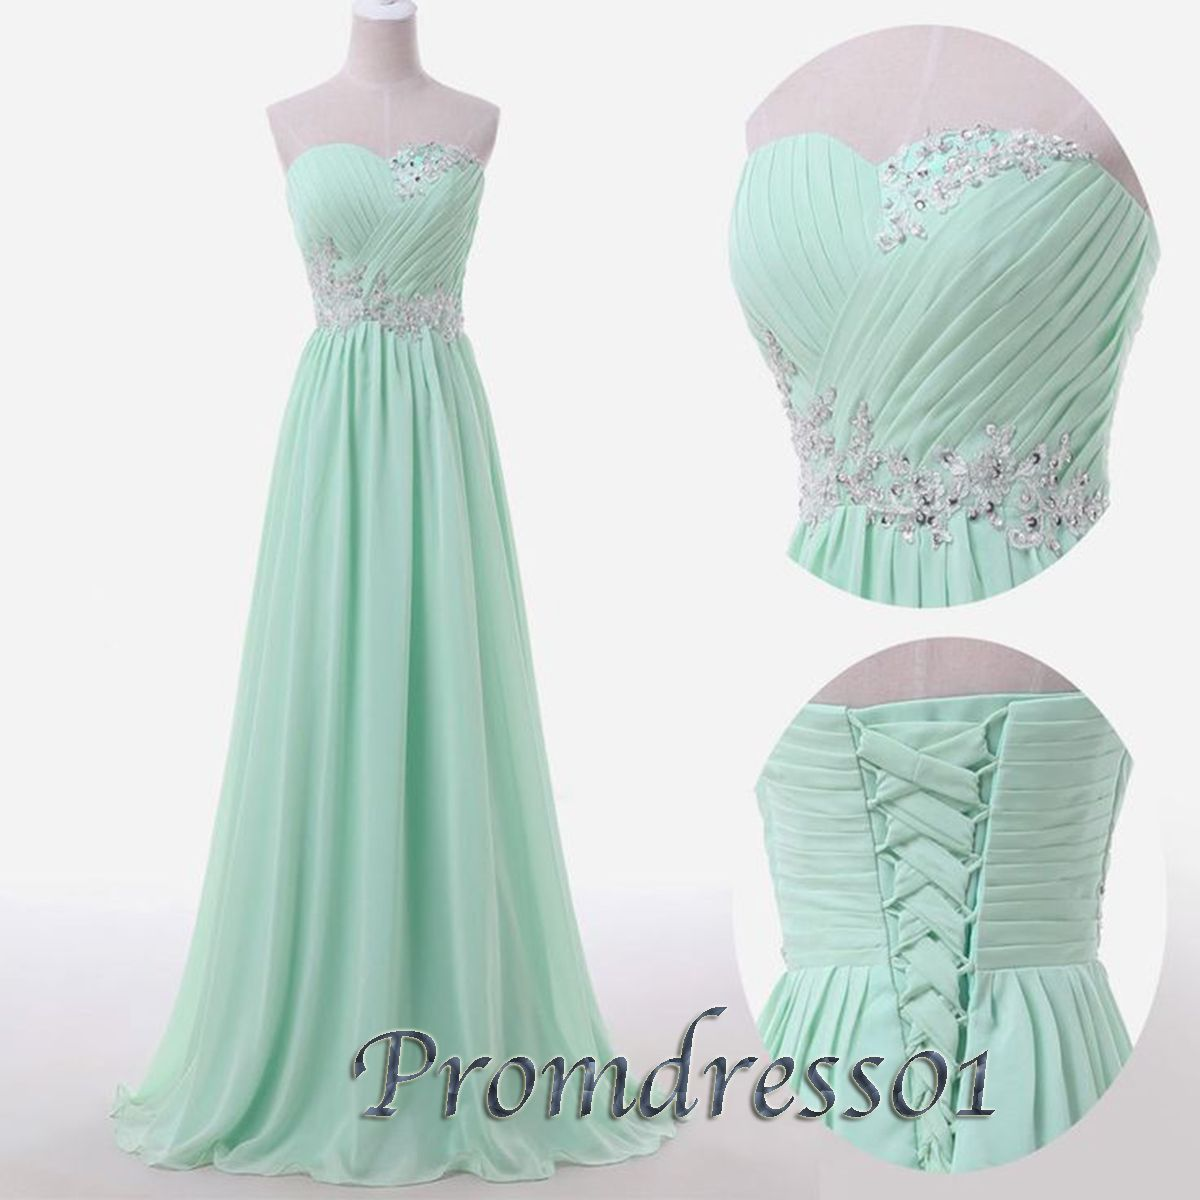 Pin by Layna Tran on Long Prom Dresses | Pinterest | Prom dresses ...